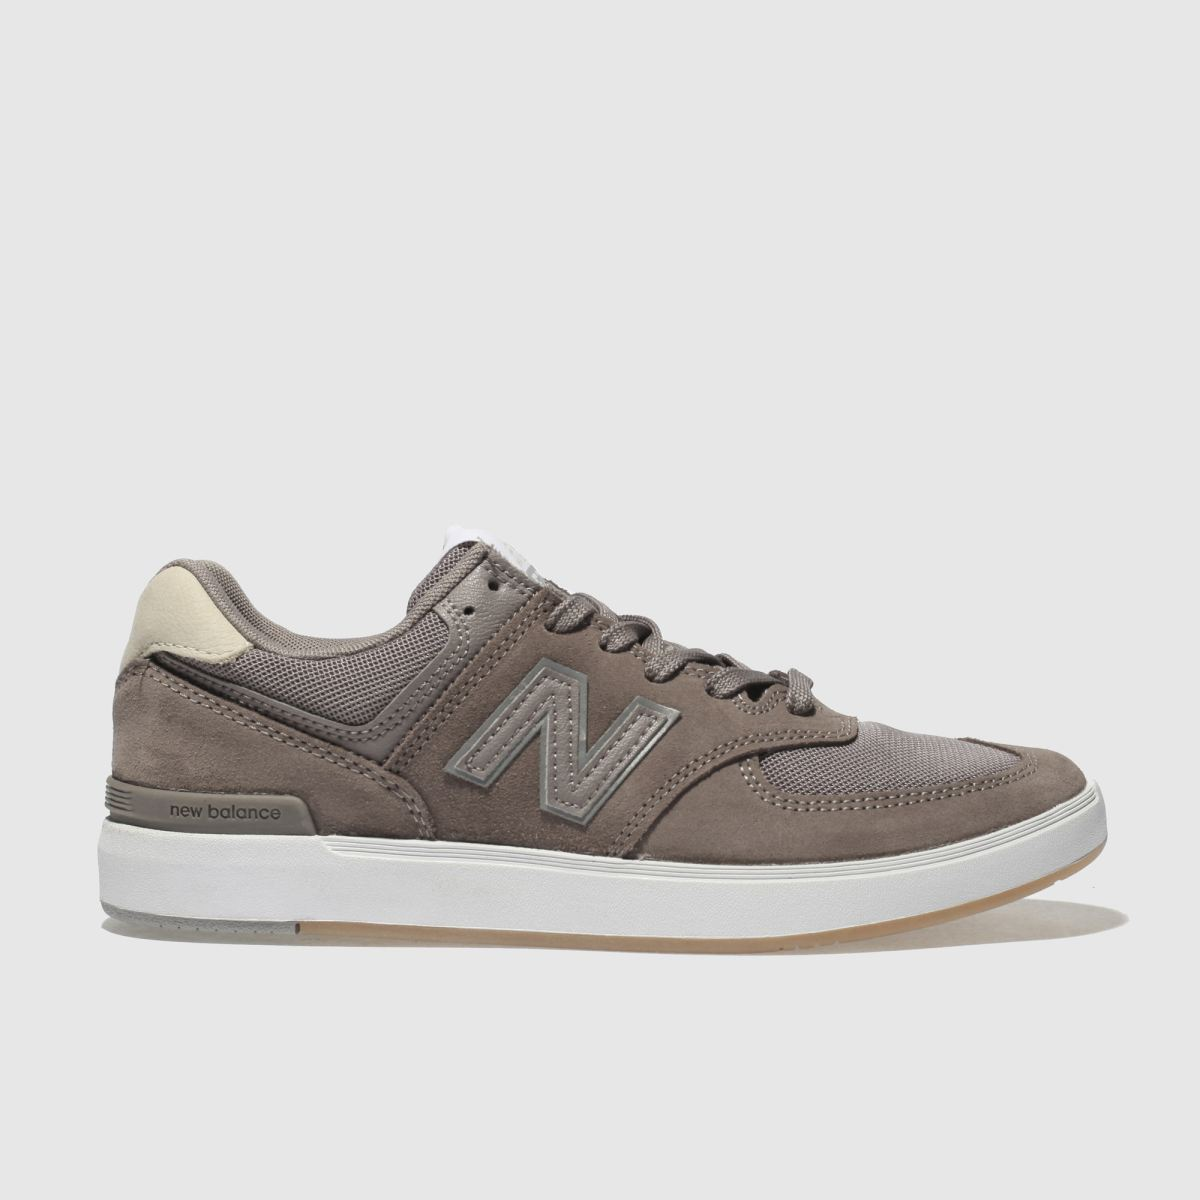 New Balance Brown All Coasts 574 Trainers